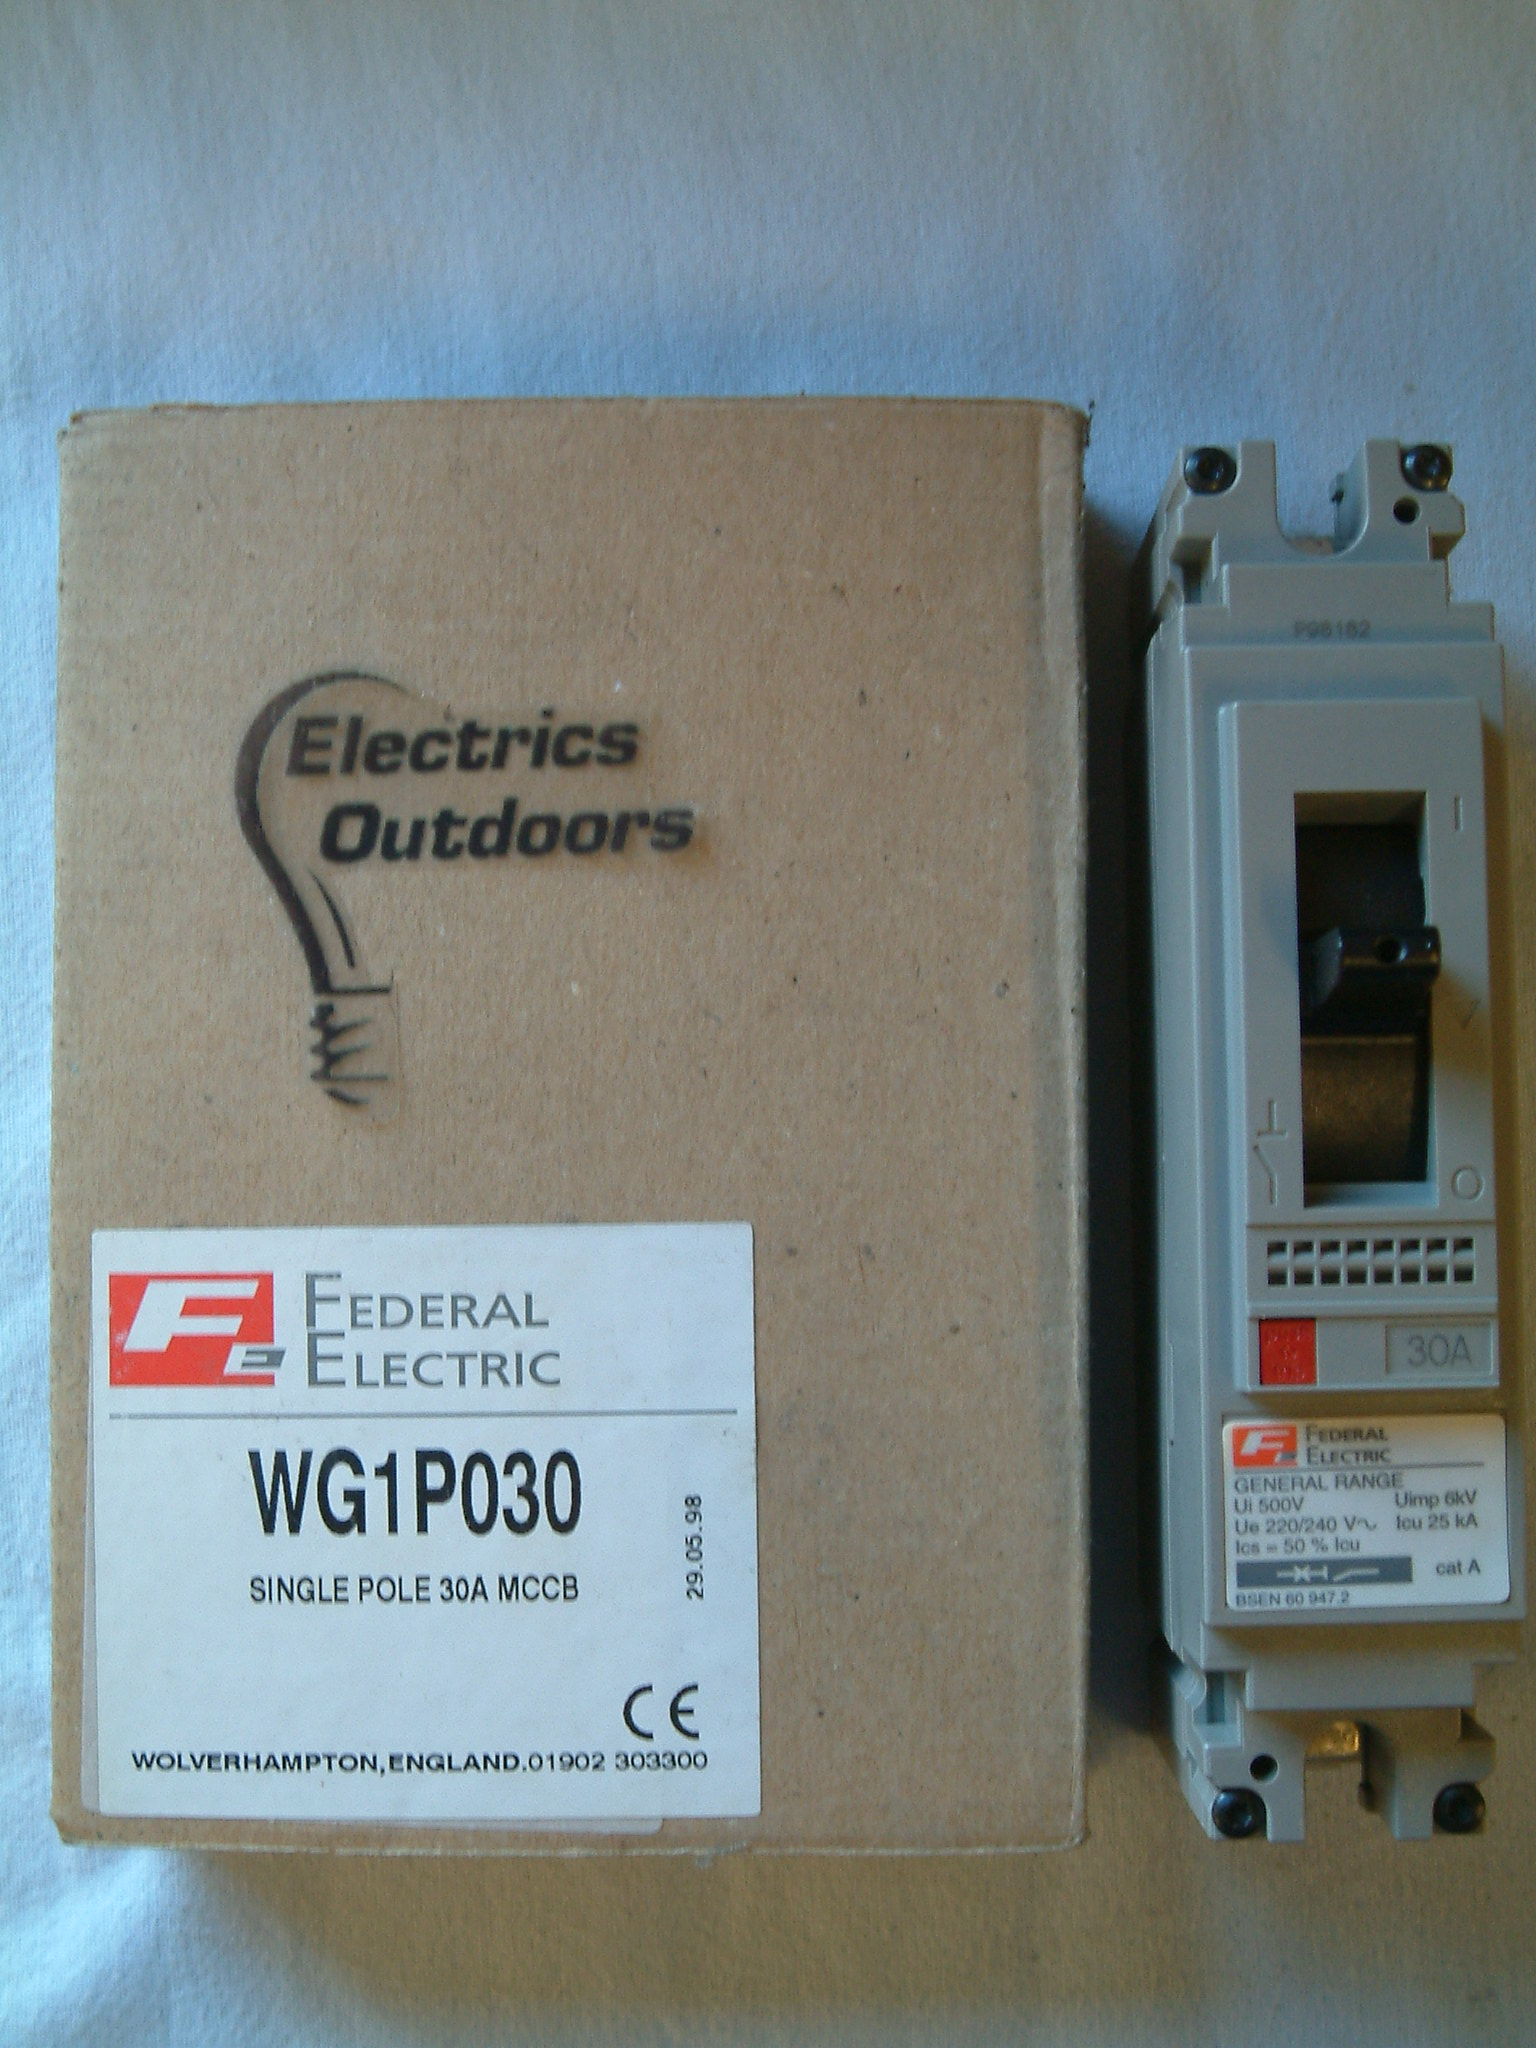 FEDERAL ELECTRIC 30 AMP 25 kA MCCB 220/240V WG1P030 GENERAL RANGE BS EN 60947